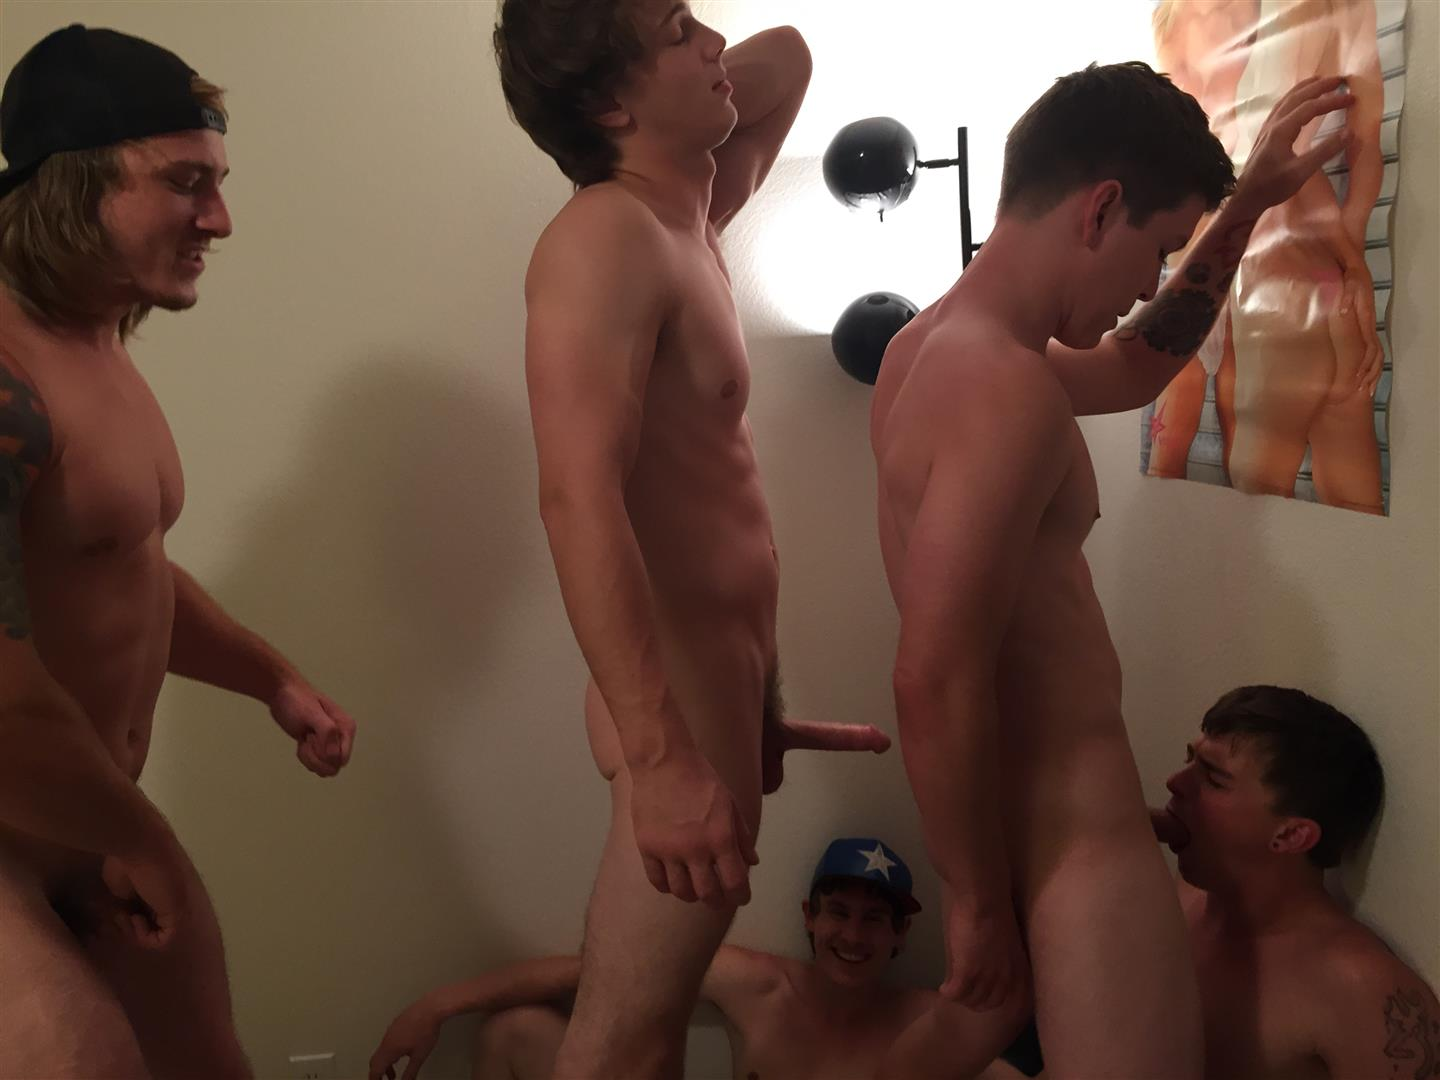 Fraternity X Naked Frat Boys Barebacking Freshman Ass Amateur Gay Porn 16 Fraternity Boys Take Turns Barebacking A Scared Freshman Ass